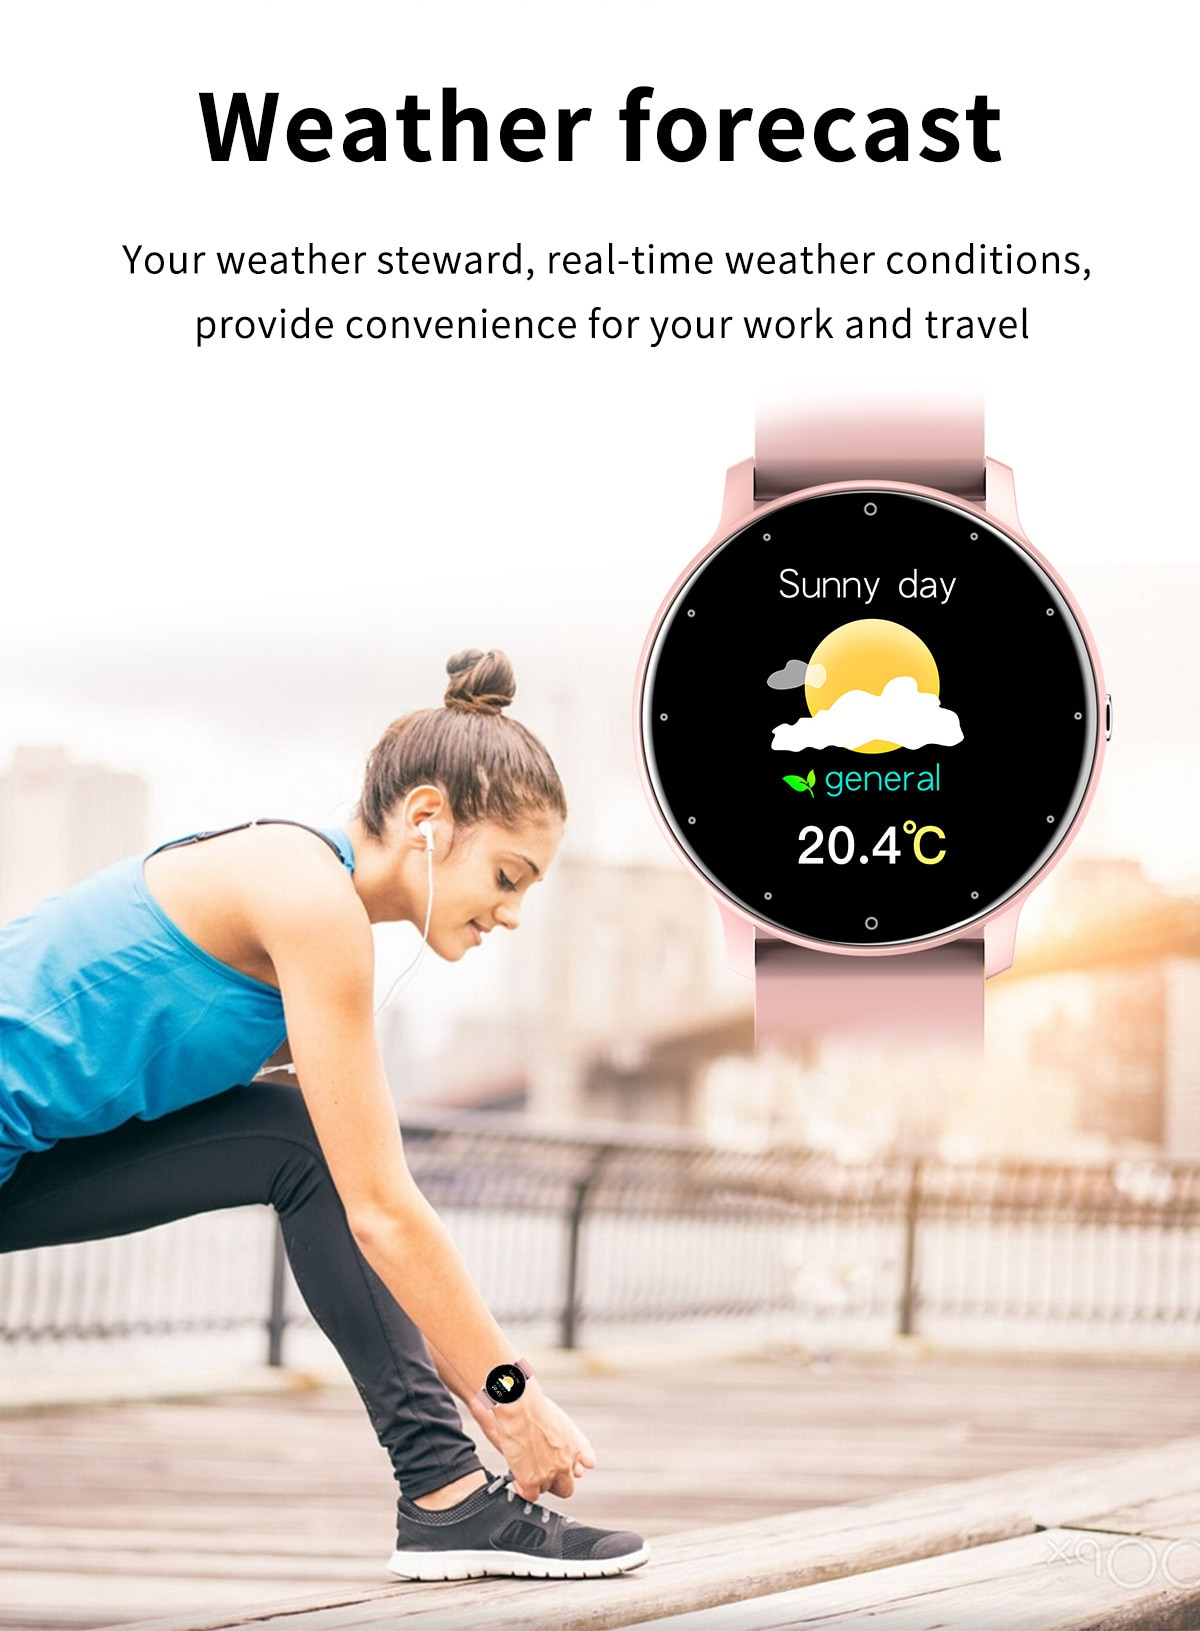 H3c7ad6e39d0b462eb19adaa7ac9aa8125 - LIGE 2021 New Men Smart Watch Real-time Activity Tracker Heart Rate Monitor Sports Women Smart Watch Men Clock For Android IOS